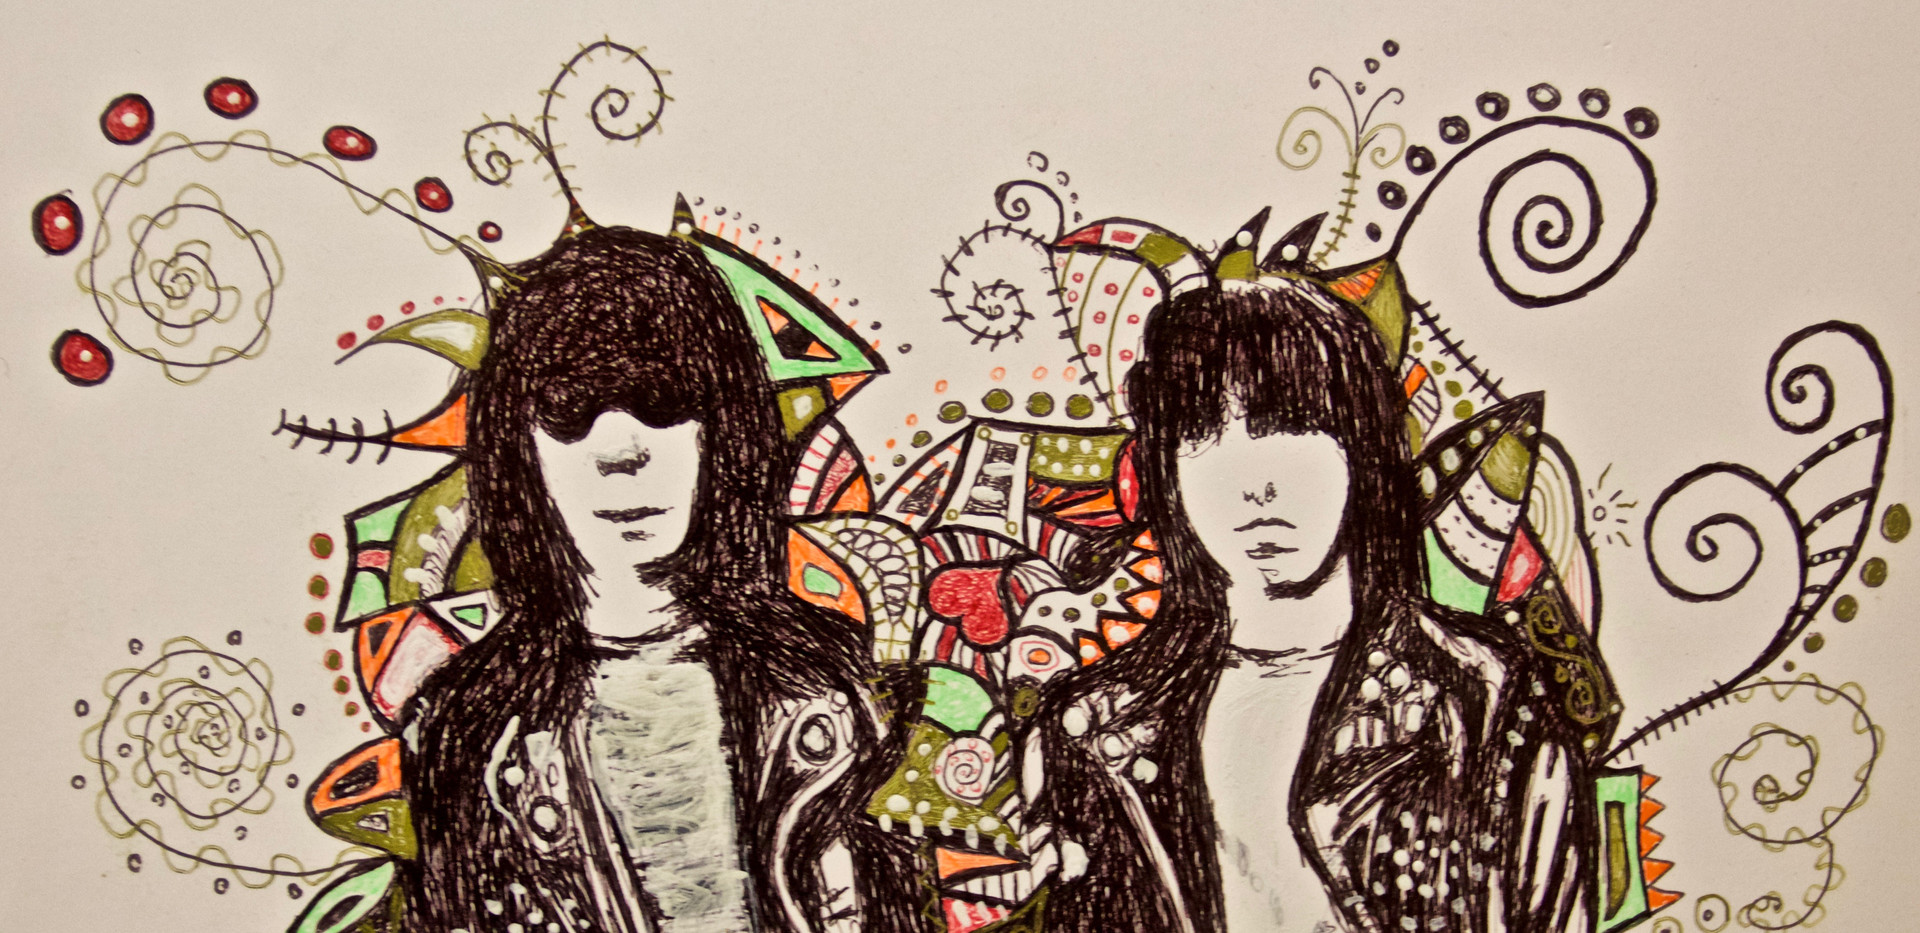 Joey And Johnny Ramone. Ink on Paper.